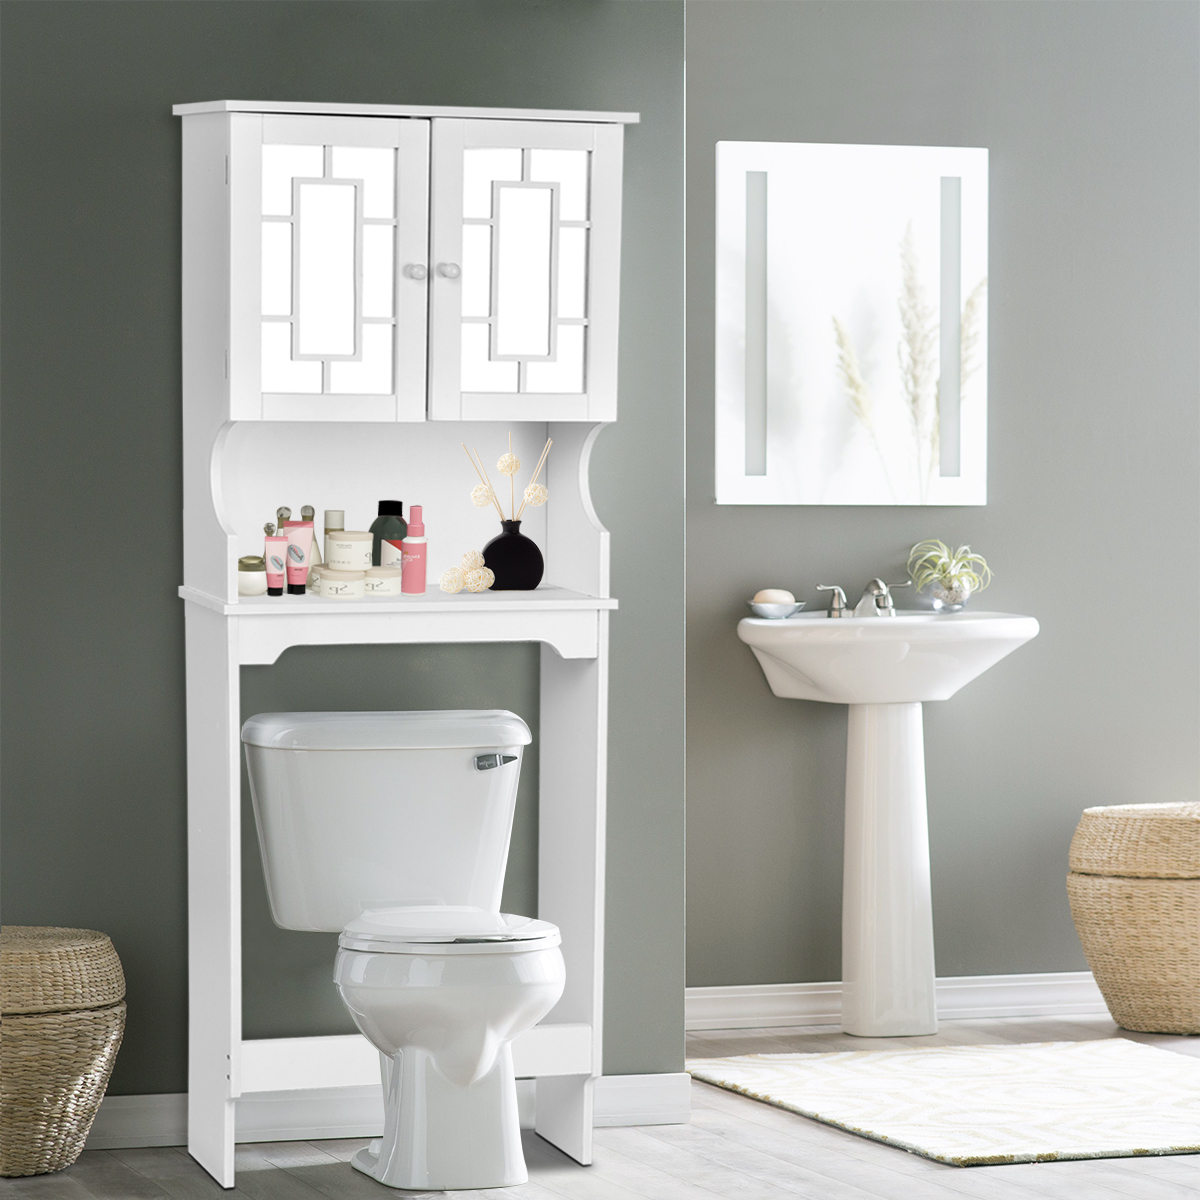 Gymax White Bathroom Over The Toilet Space Saver Storage Cabinet Organizer  Shelf